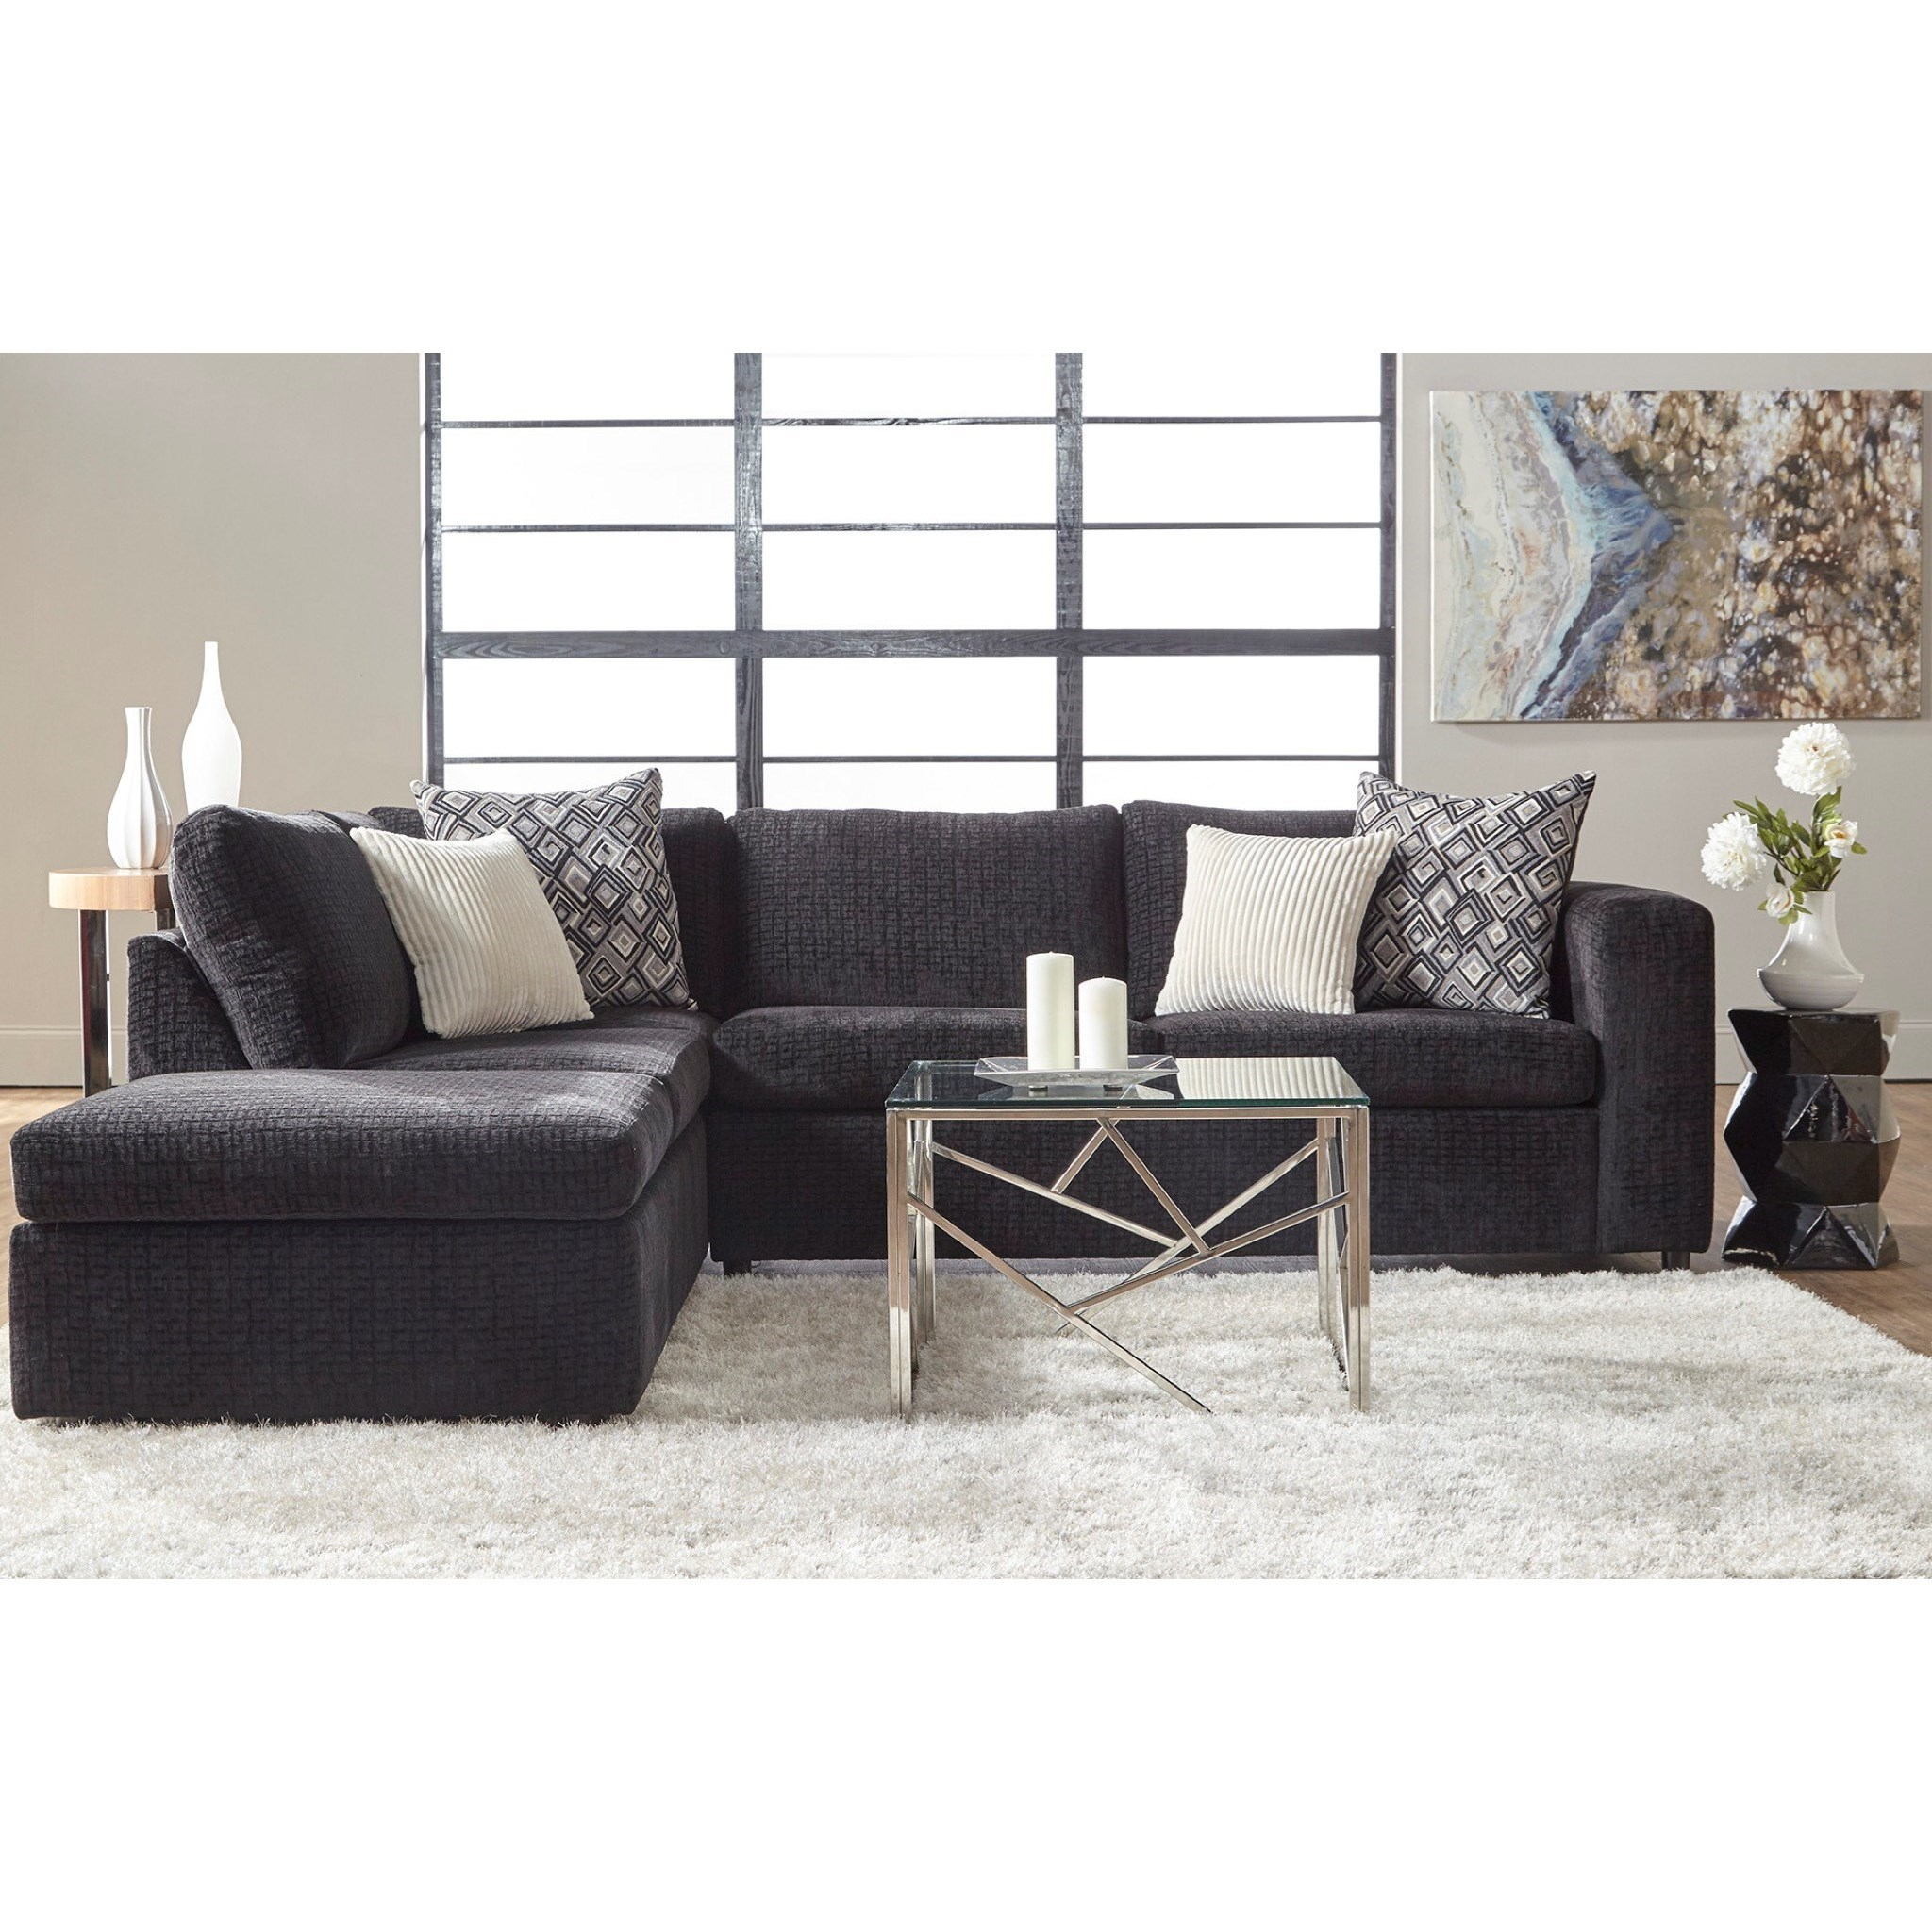 Serta Upholstery By Hughes Furniture 1100 Casual Contemporary Sectional Sofa  With Chaise